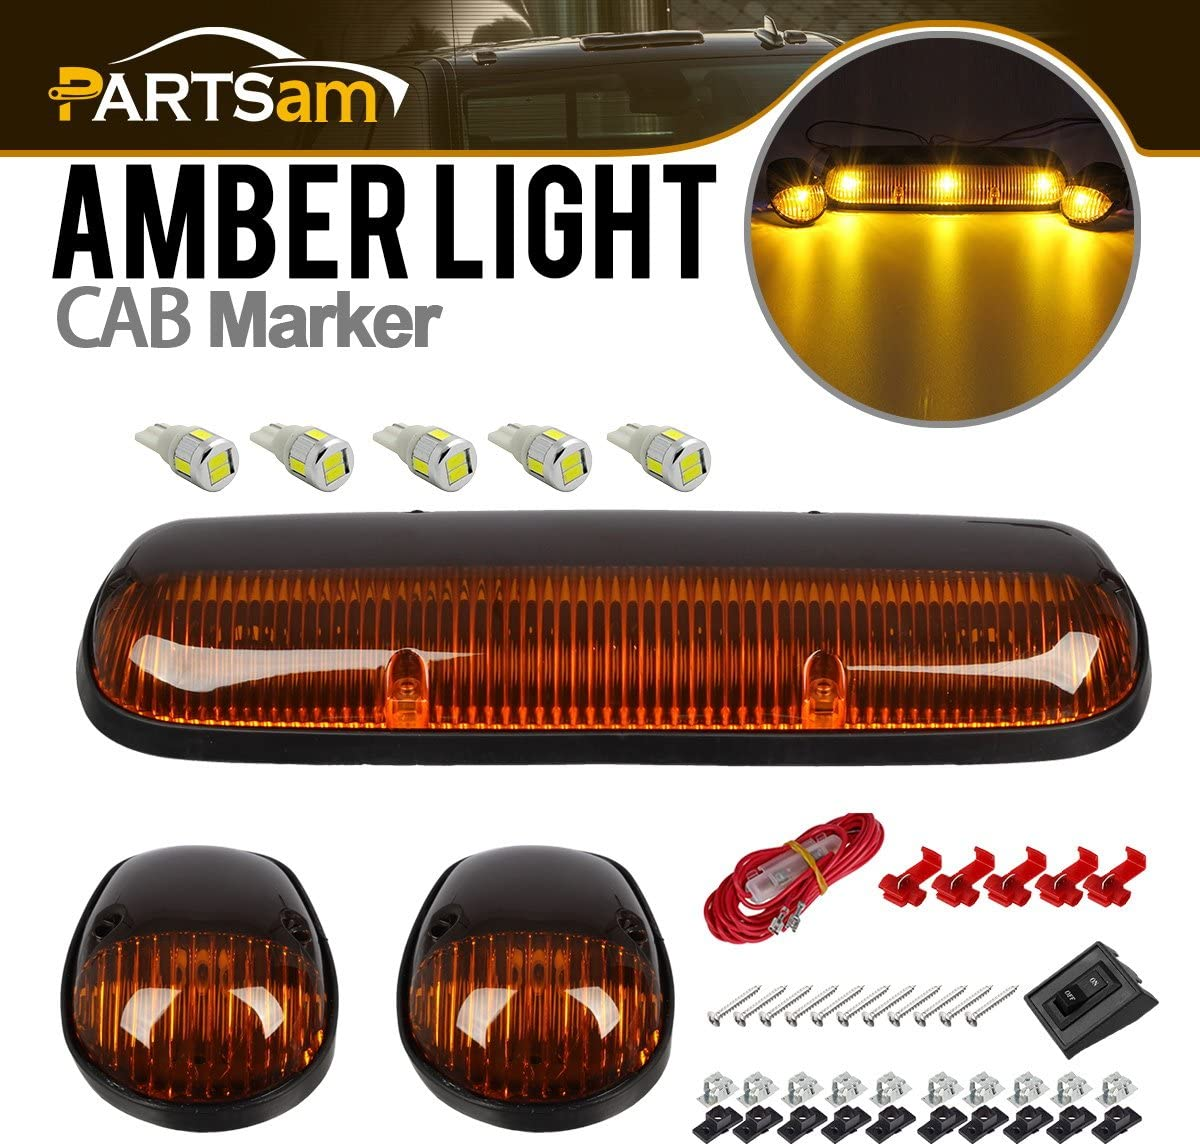 Partsam 3X Clear White 30LED Cab Marker Top Roof Lights 264155CL Compatible with Chevrolet Silverado//GMC Sierra 1500 1500HD 2500 2500HD 3500 2002 2003 2004 2005 2006 2007 Pickup Trucks